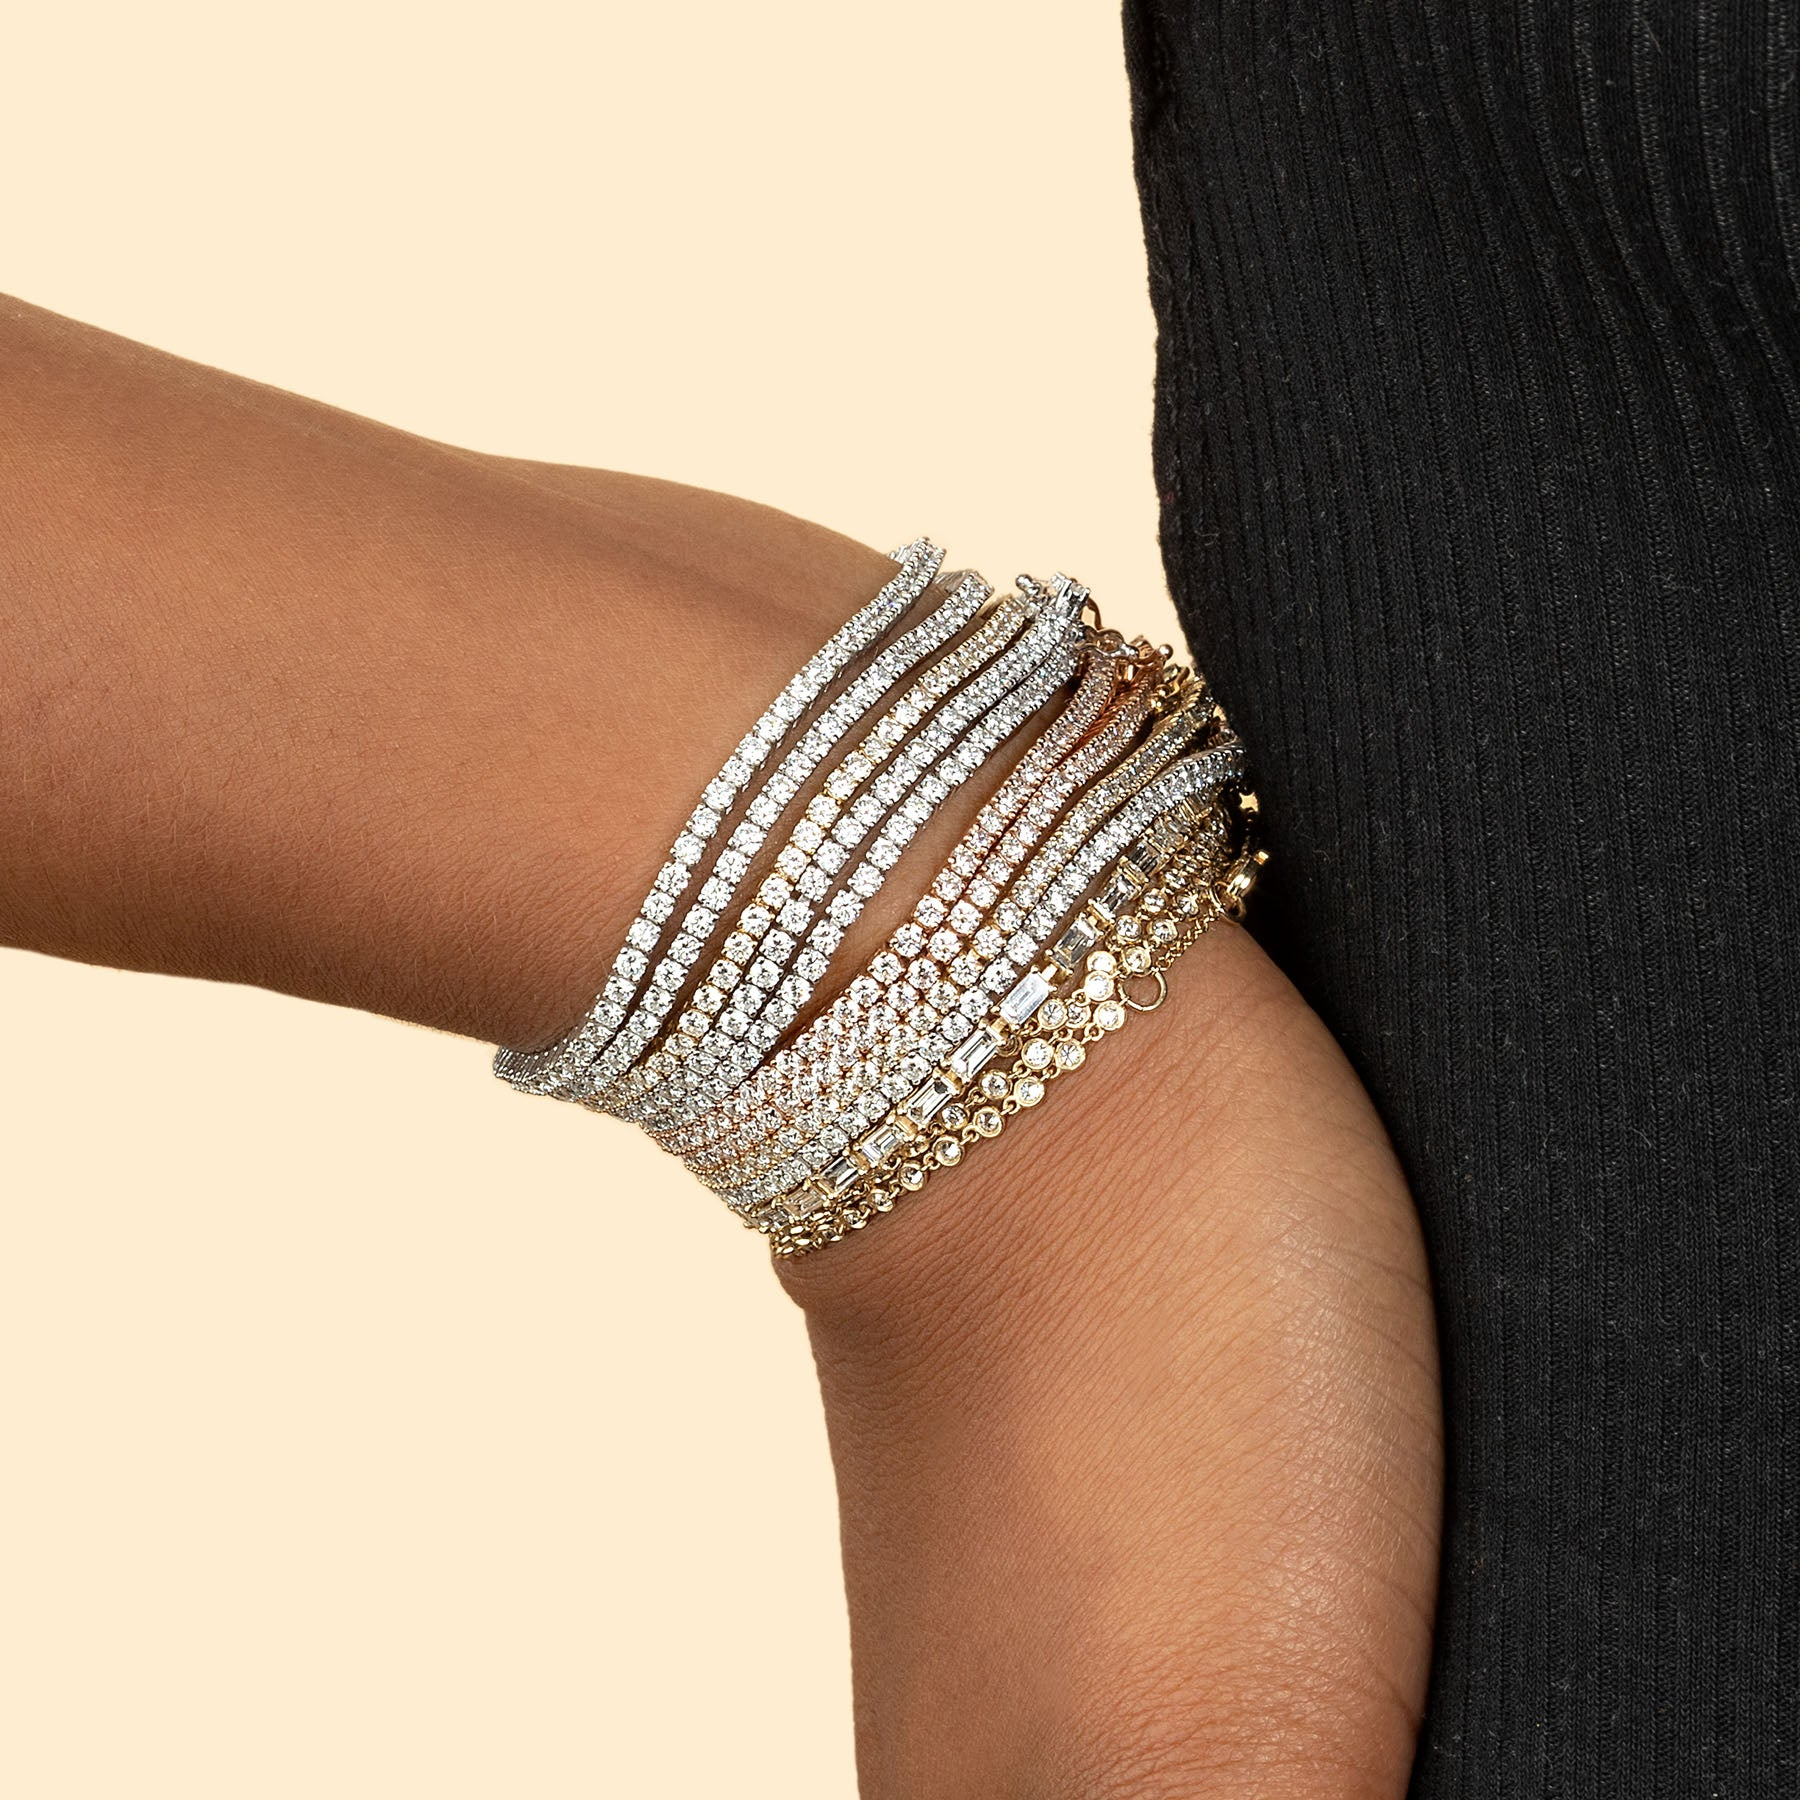 PERFECT DIAMOND TENNIS BRACELET